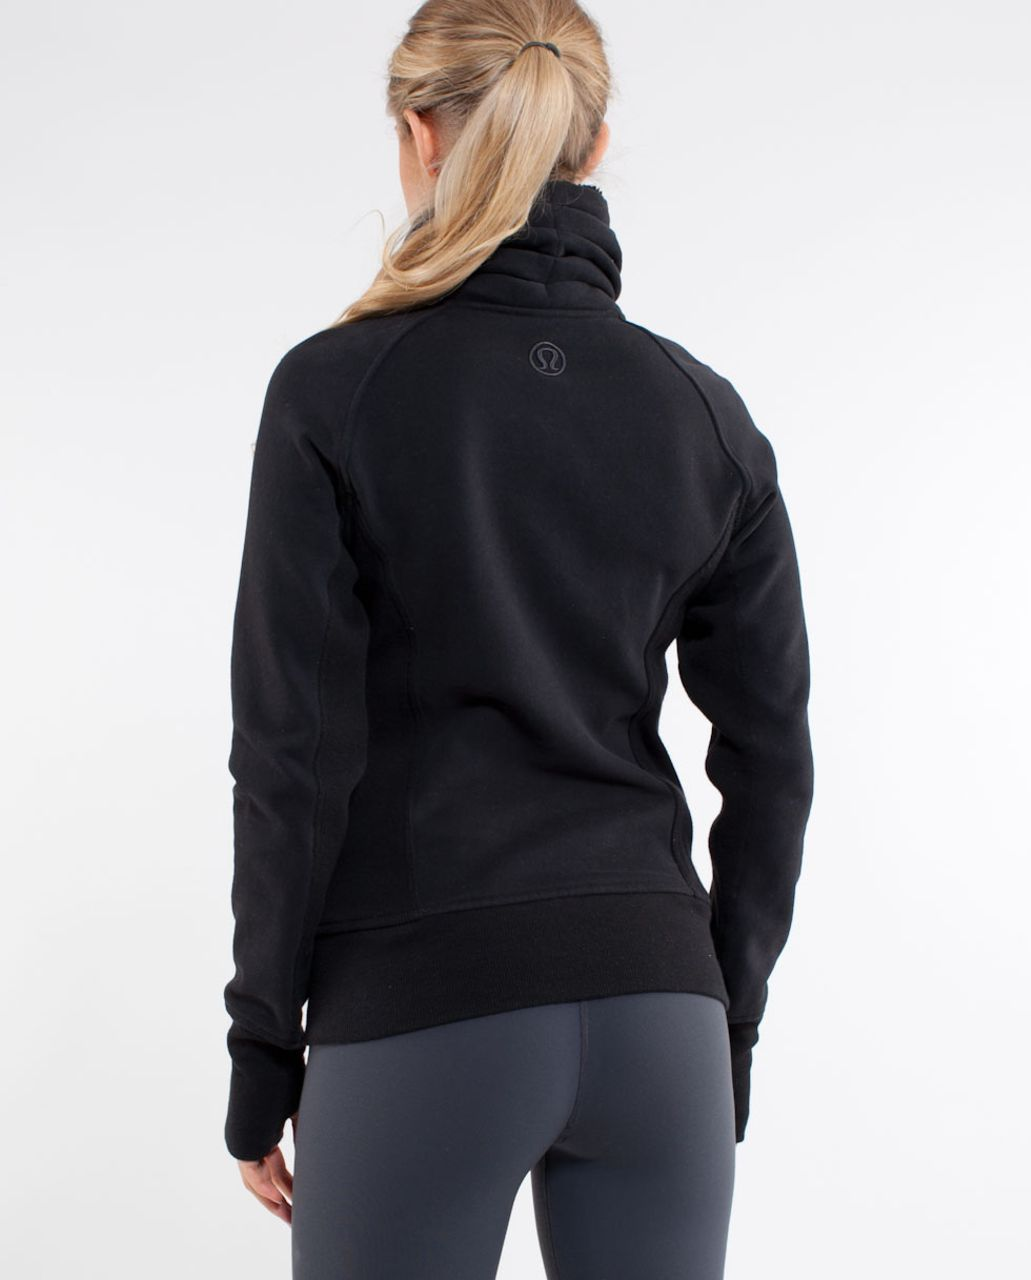 Lululemon Cuddle Up Jacket - Black